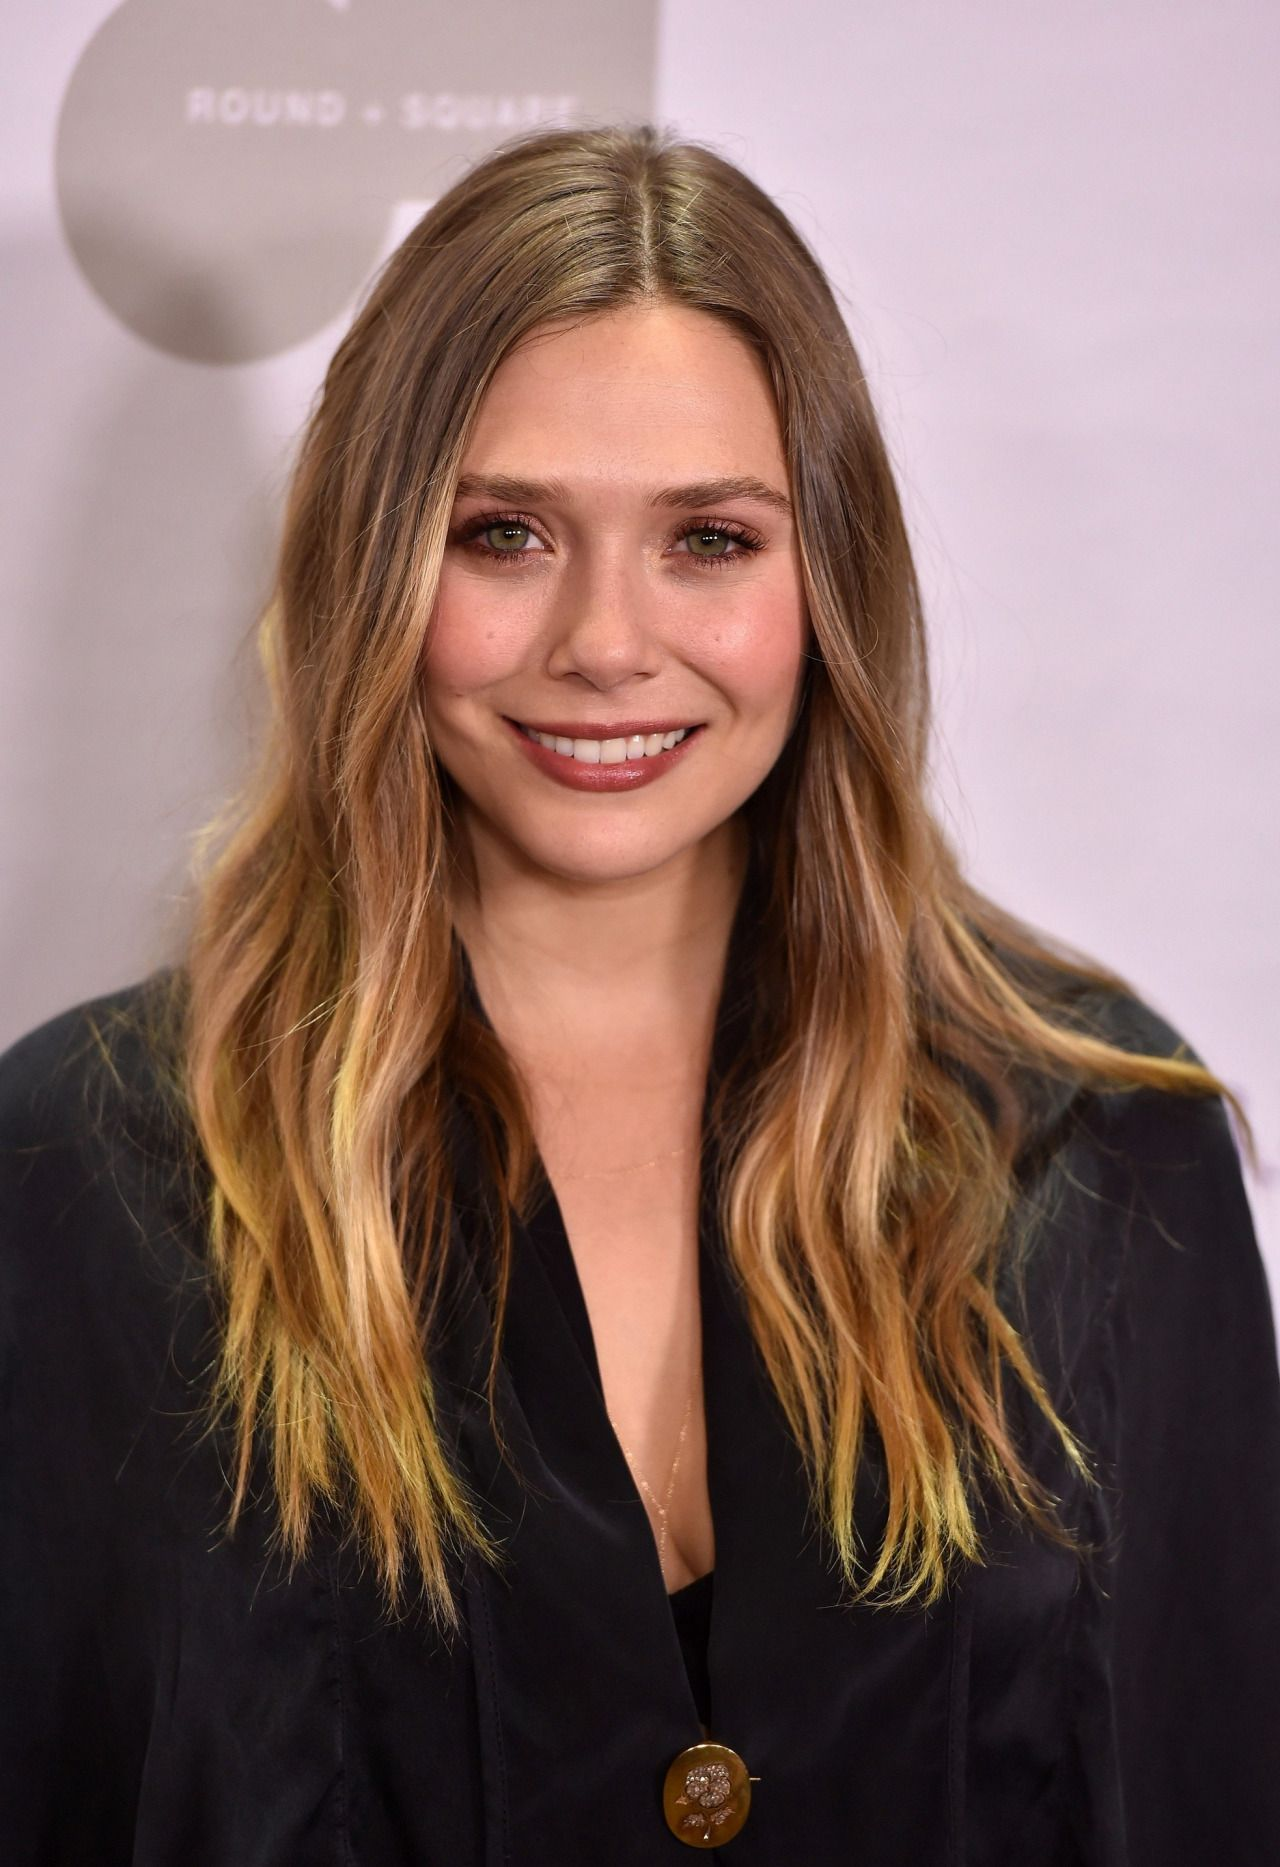 Watch Elizabeth Olsen born February 16, 1989 (age 29) video